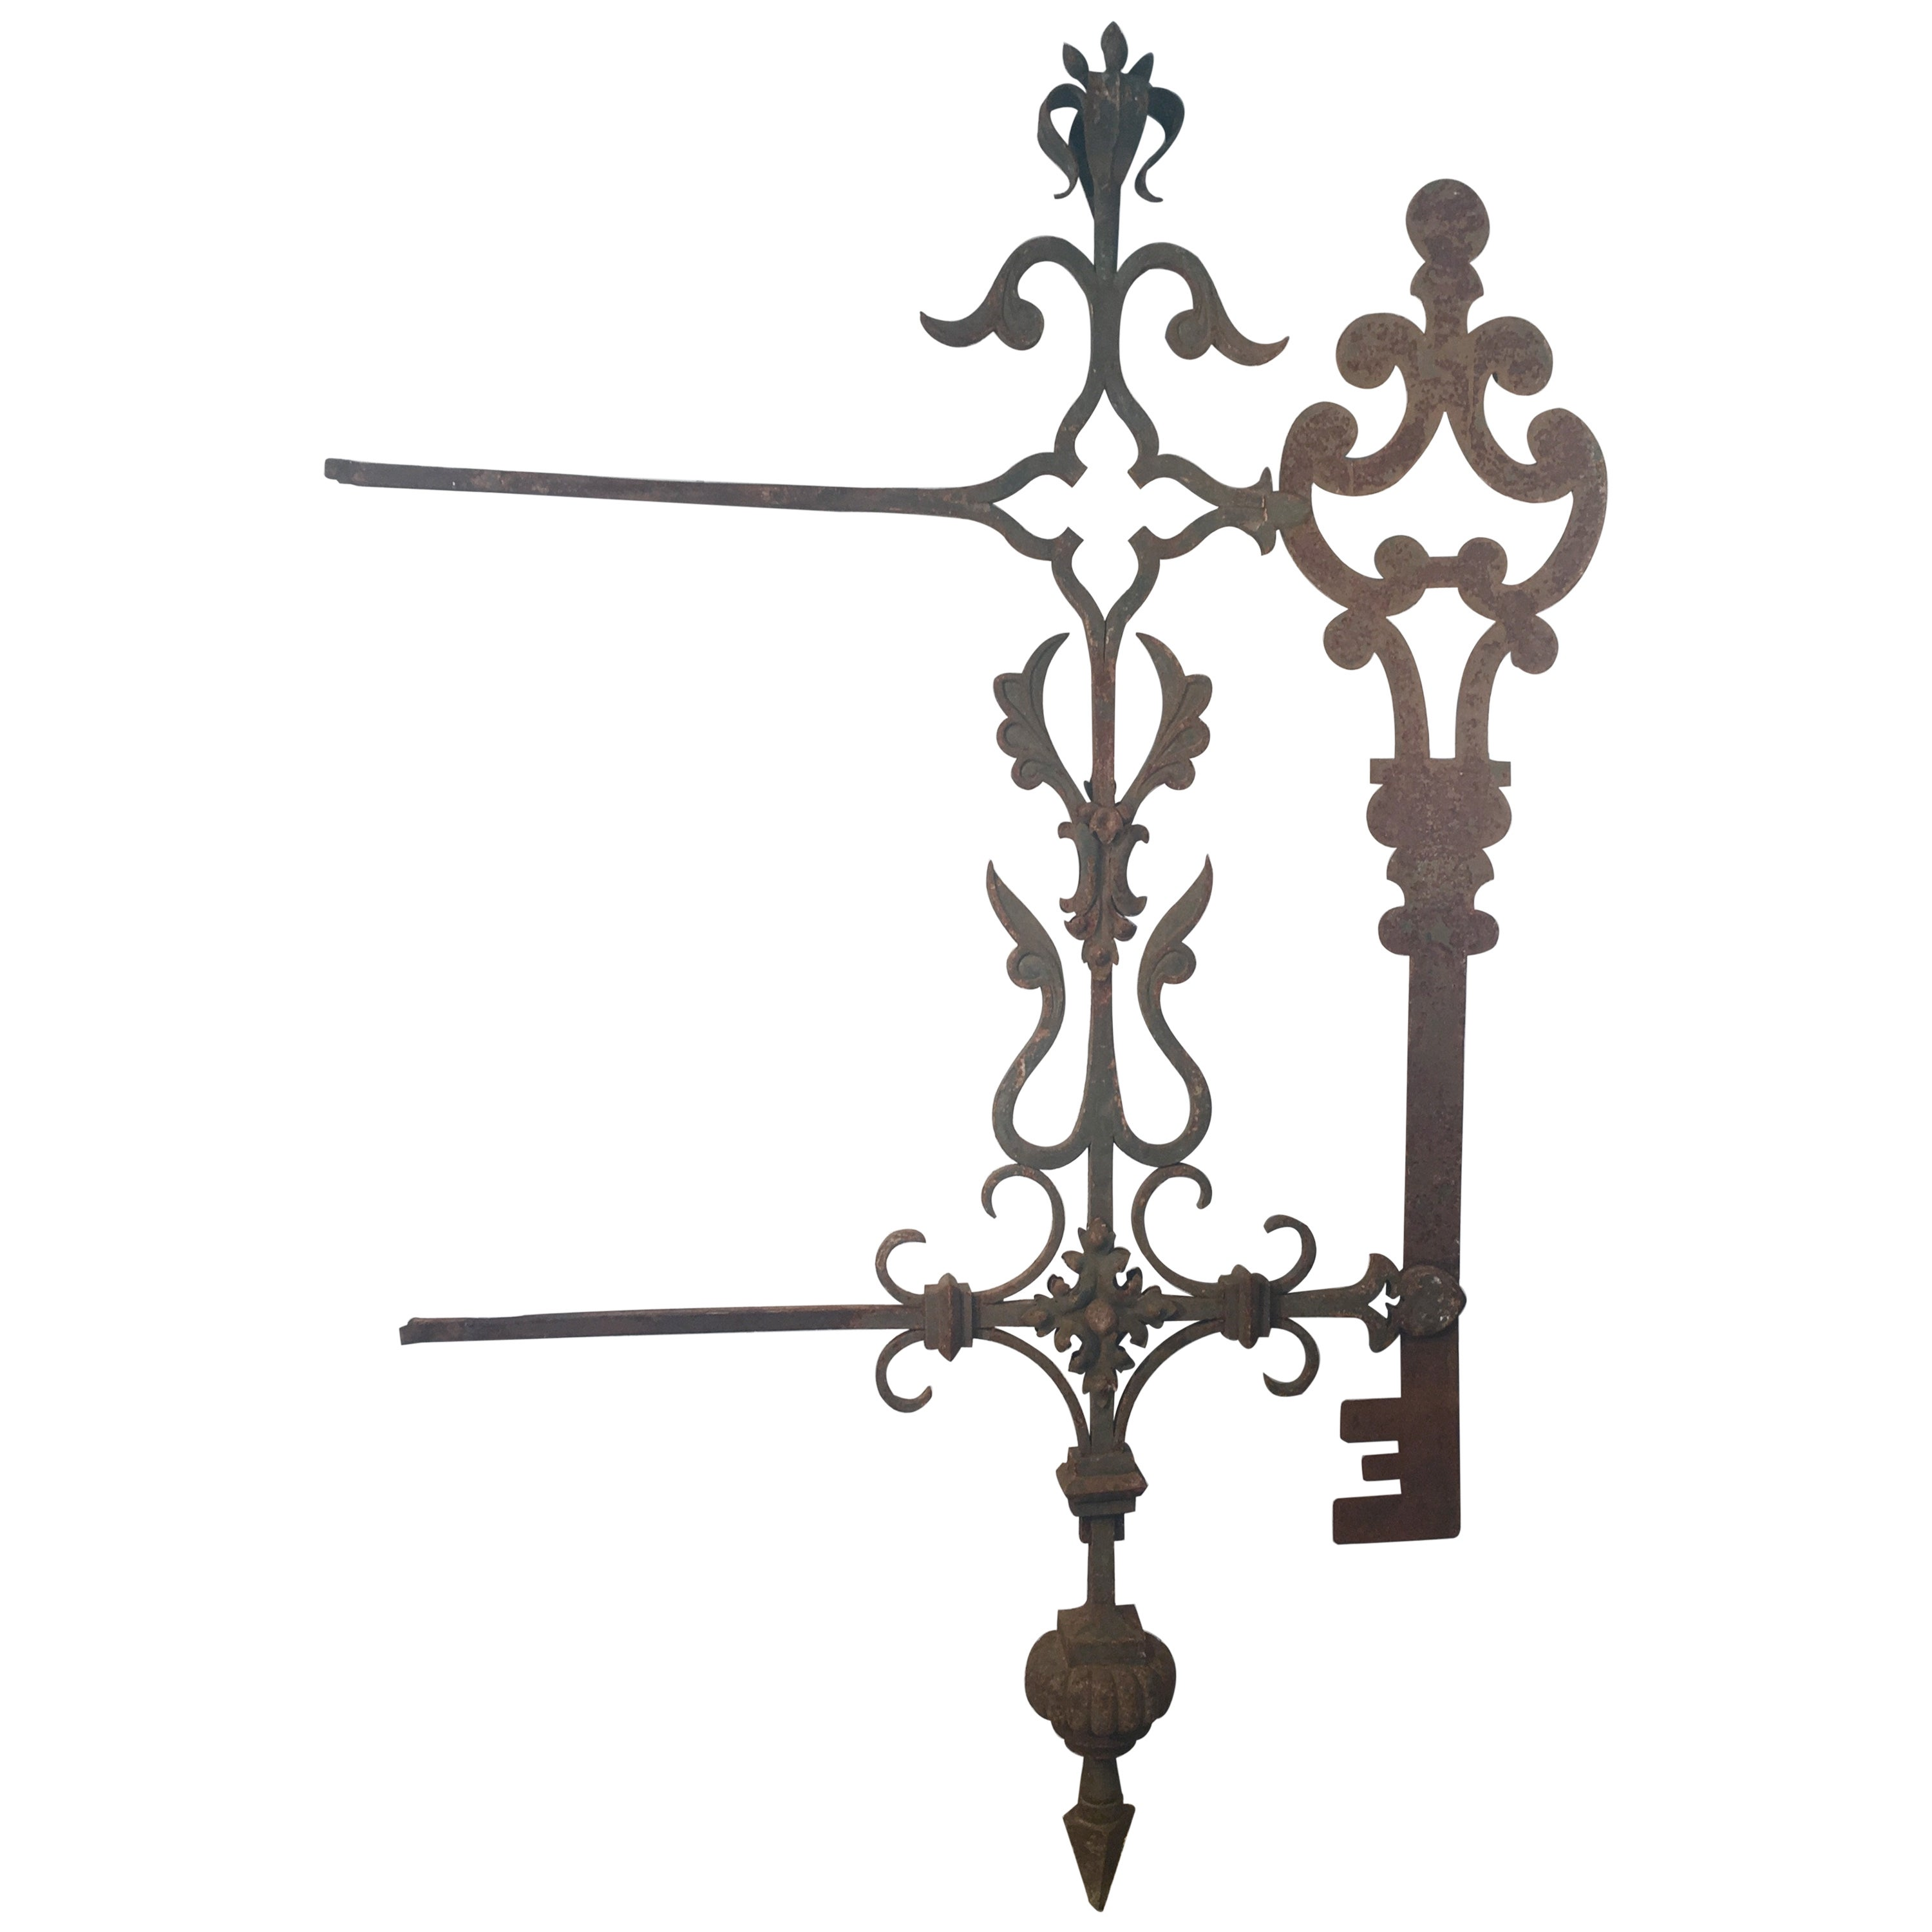 Very Large 19th Century French Key Maker's Trade Sign